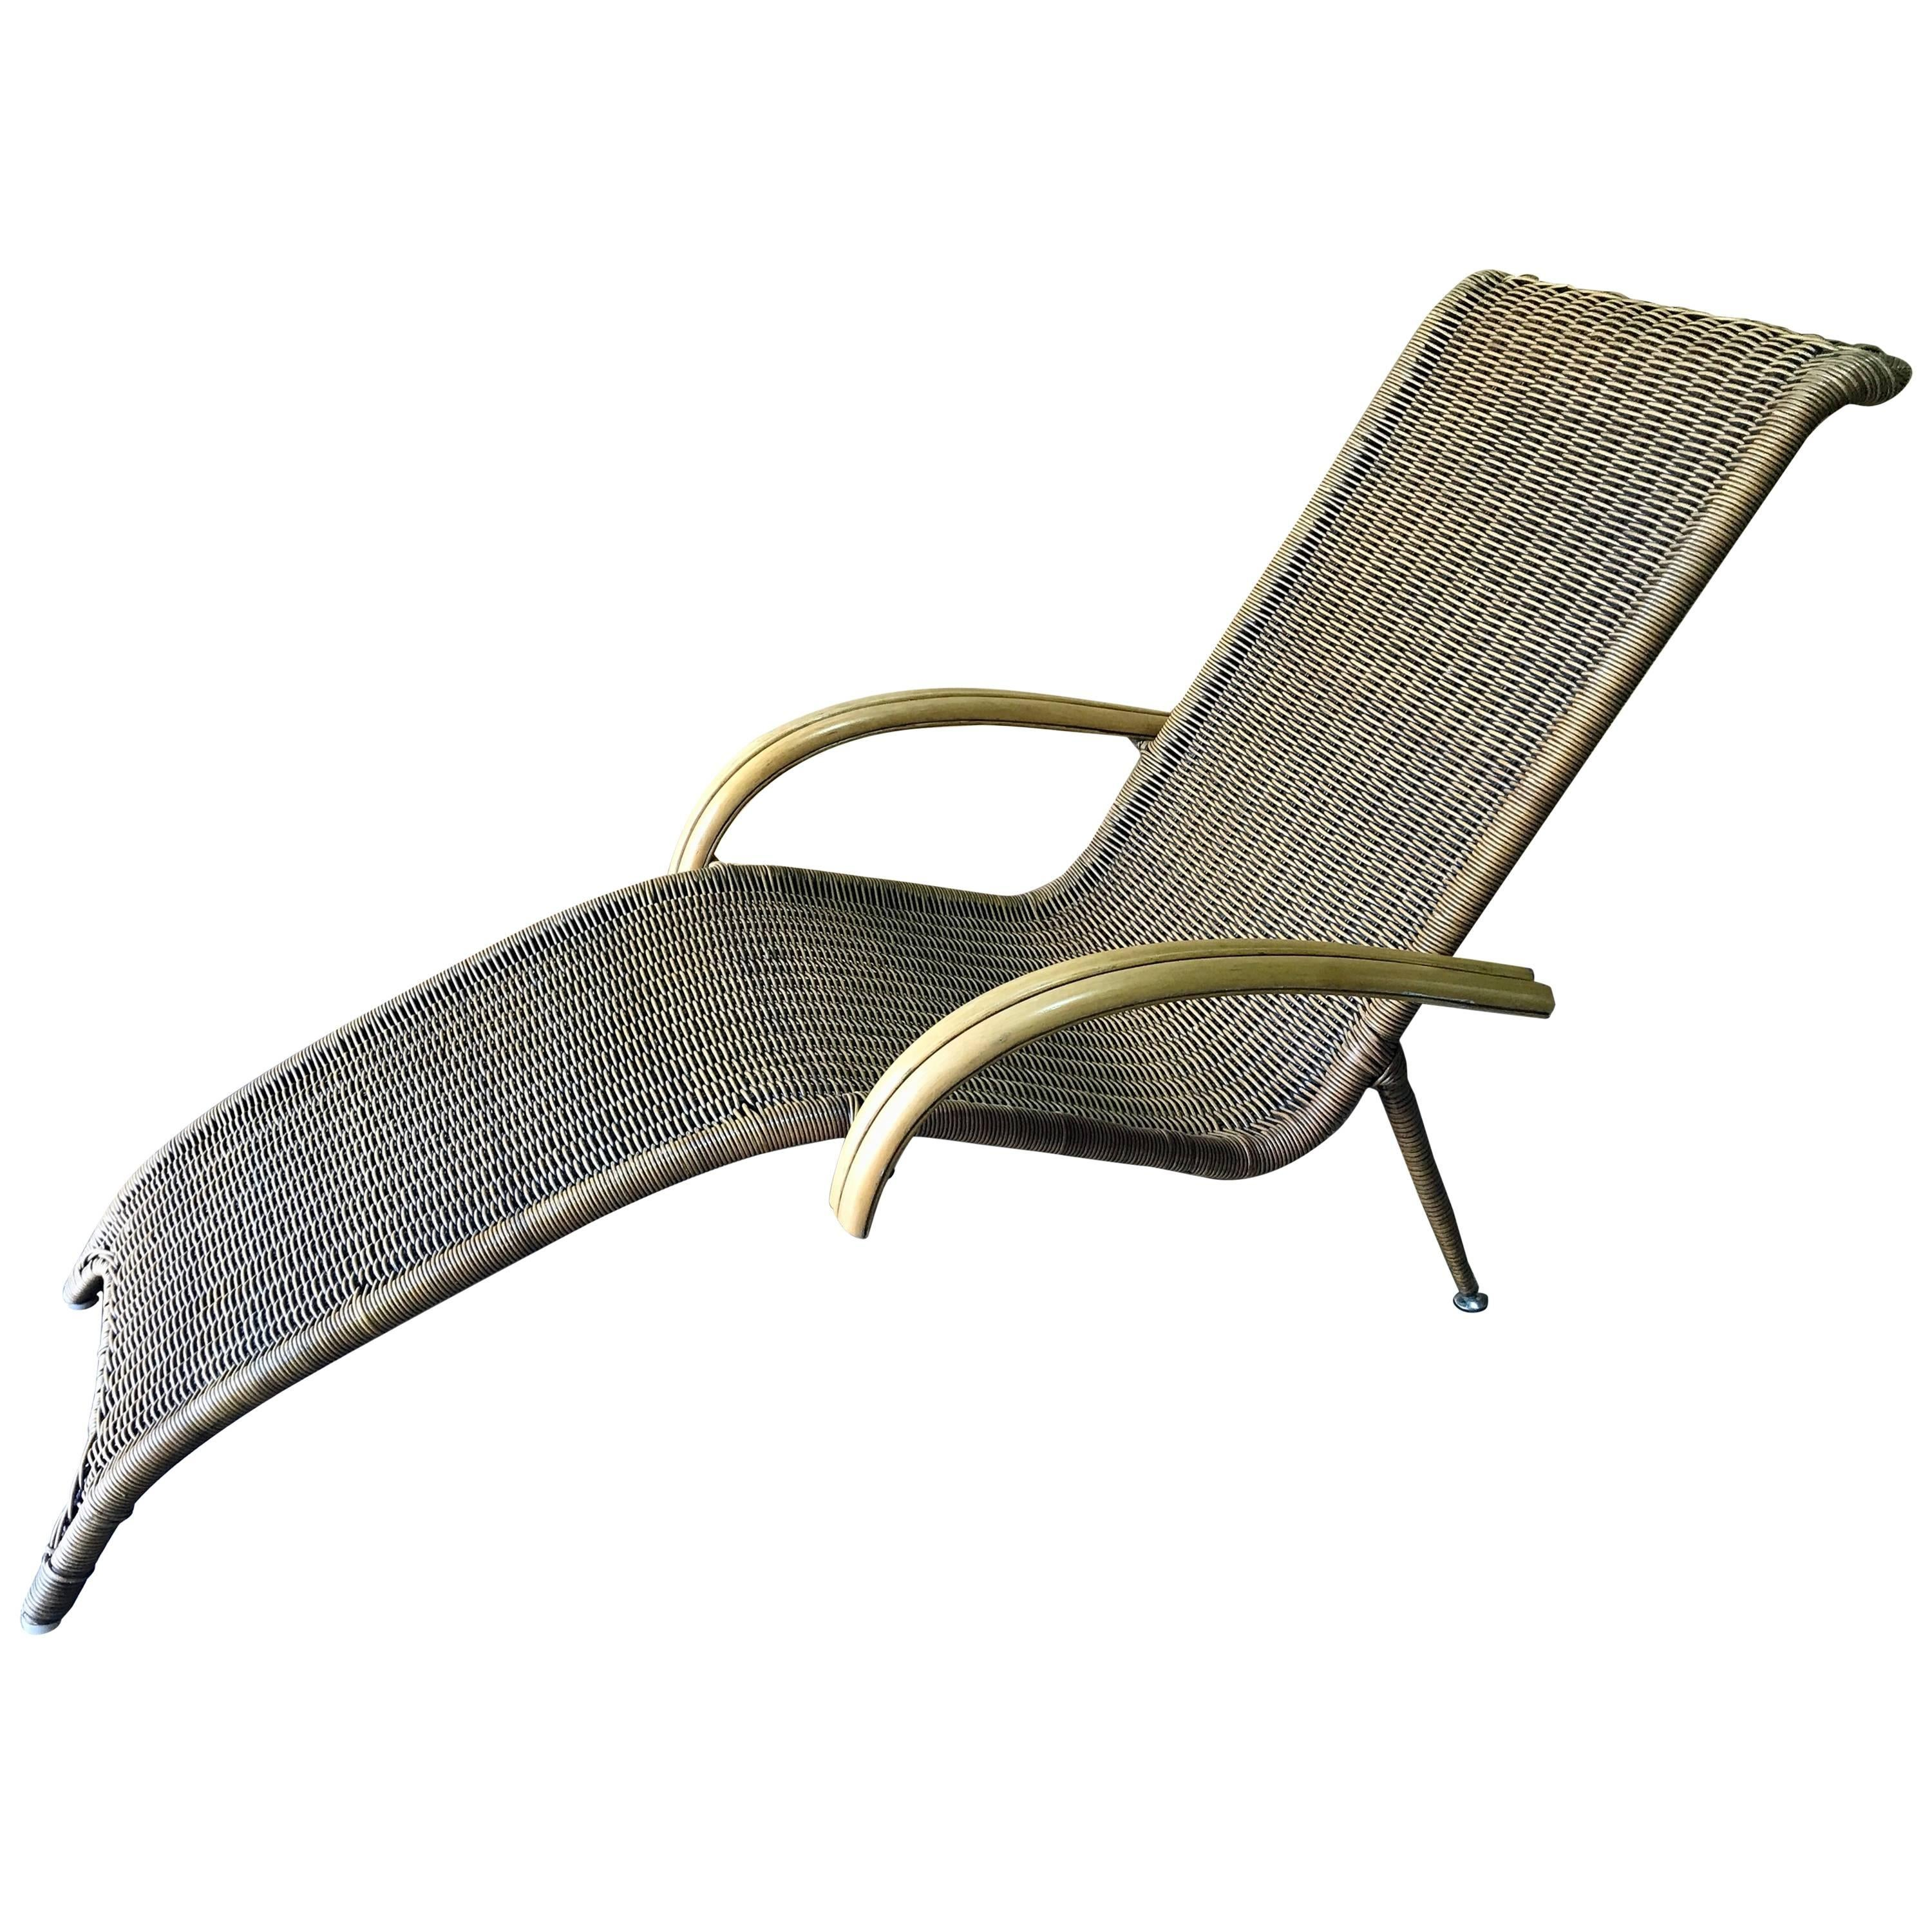 Midcentury Italian Woven Rattan Chaise Lounge Restored  sc 1 st  1stDibs : bamboo chaise lounge - Sectionals, Sofas & Couches